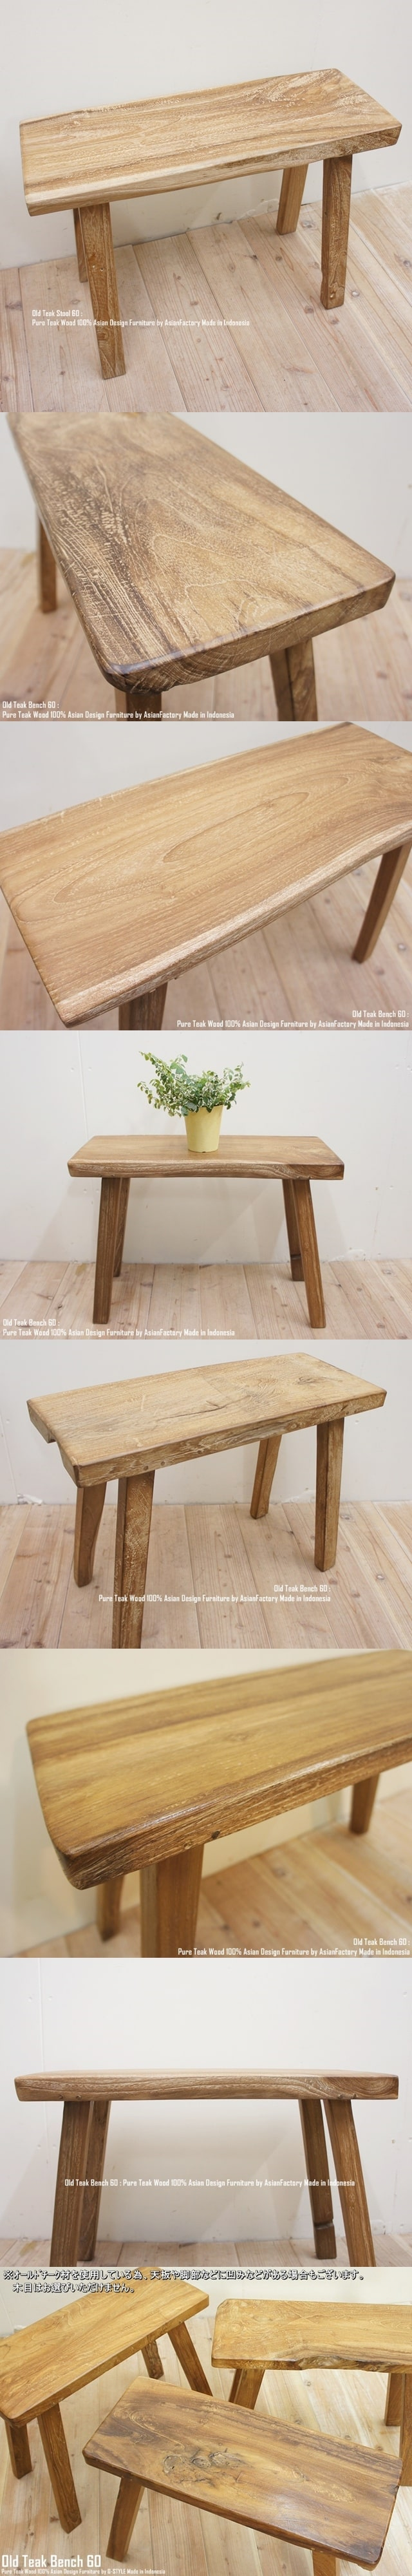 1 jpy Old cheeks natural wood one sheets board stool 60cm ...